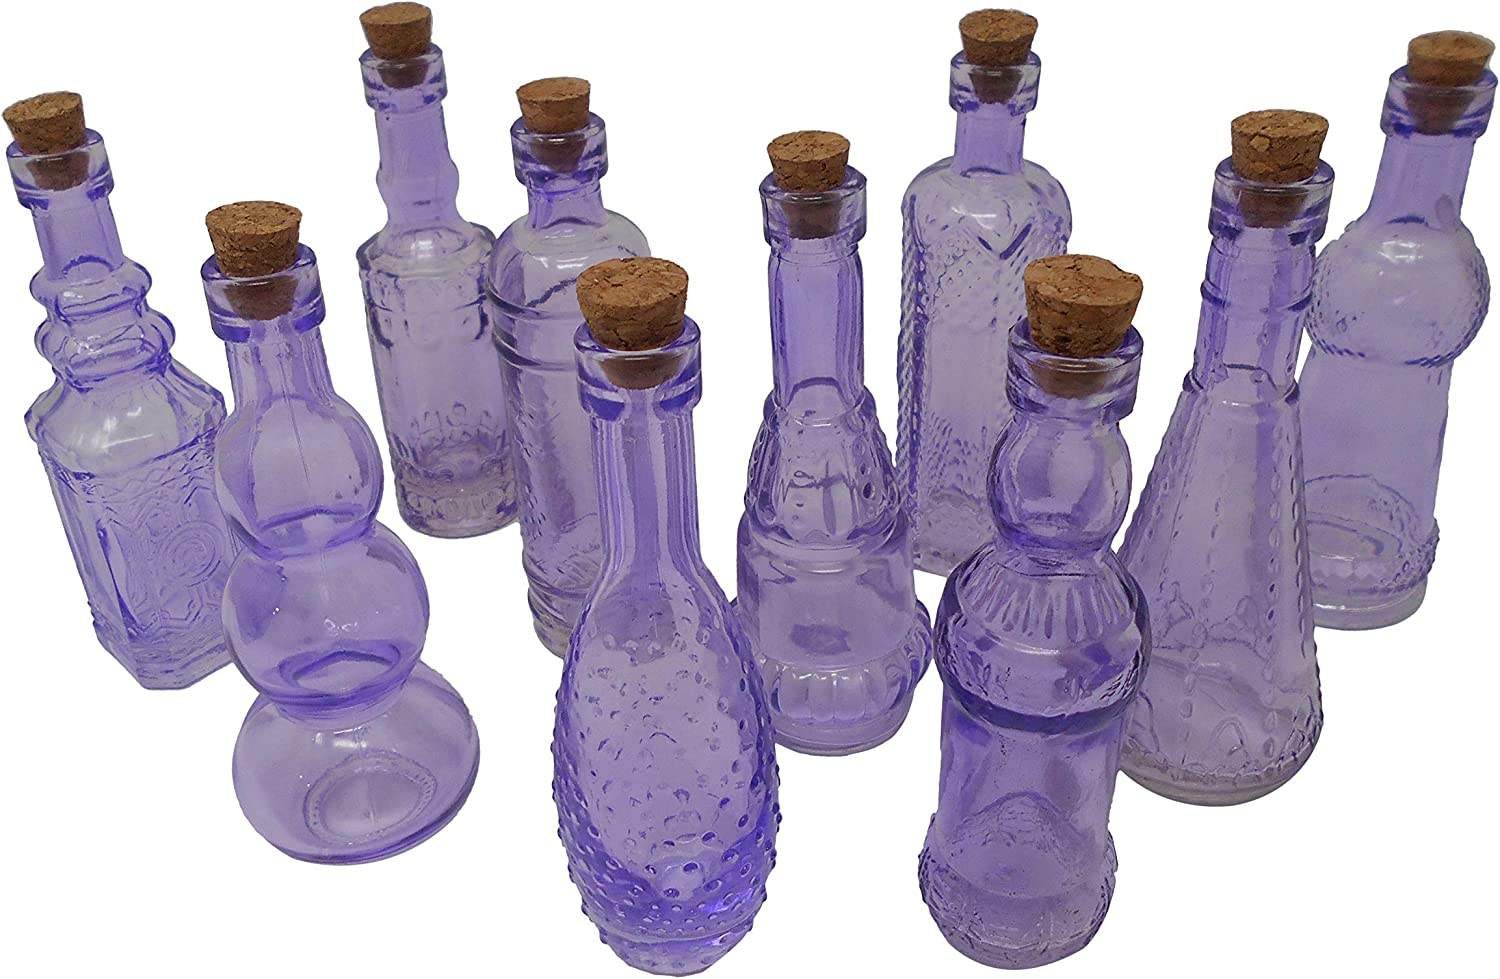 BULK PARADISE Purple Vintage Glass Bottles with Corks, Assorted Shapes, 5 Inch Tall, Set of 10 Bottles